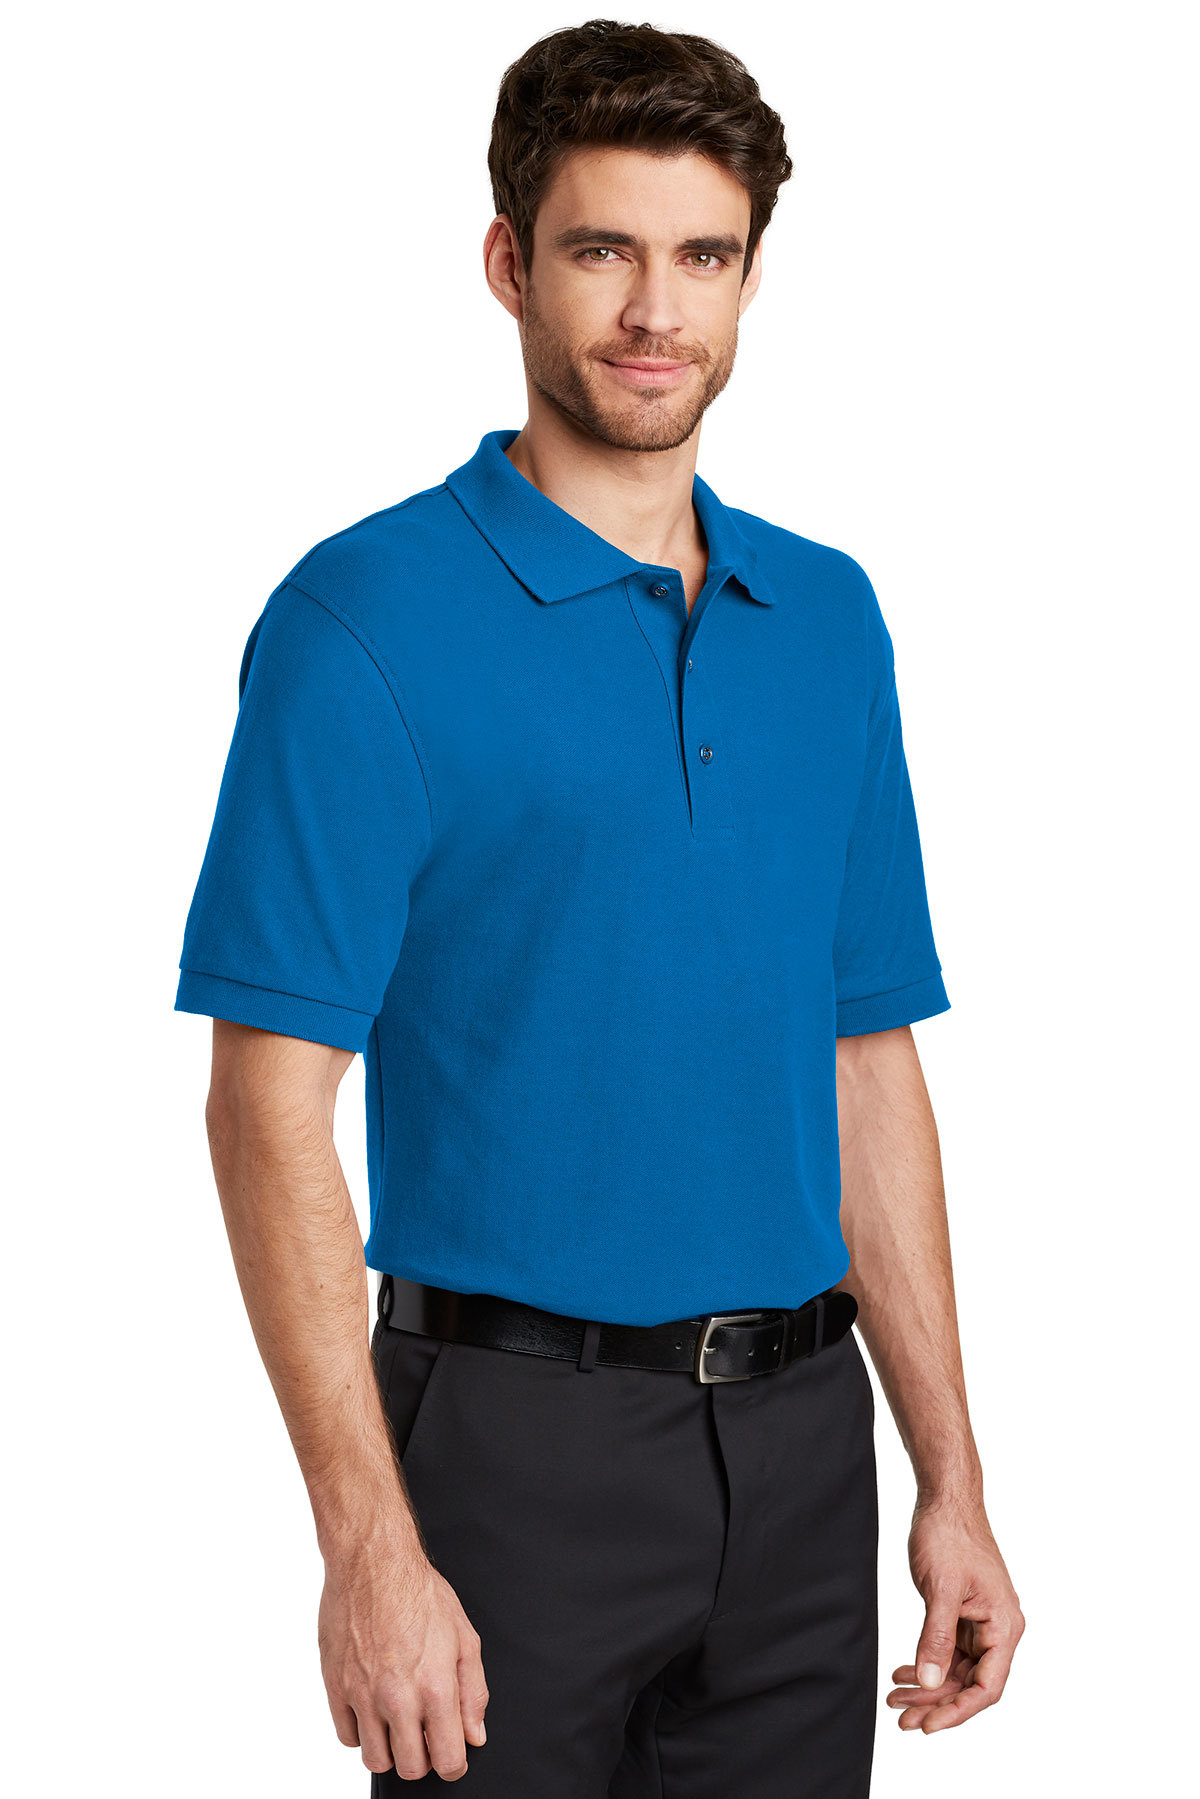 cf741e29 ... Port Authority® Silk Touch™ Polo. A maximum of 8 logos have been  uploaded. Please remove a logo from My Logos to continue